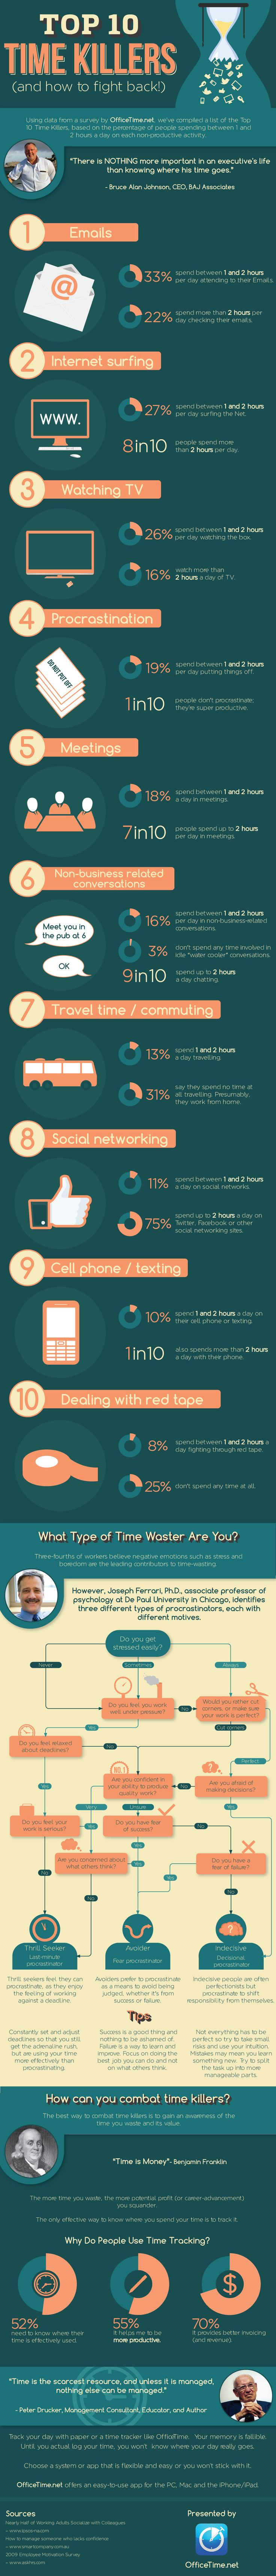 Infographic: The top 10 productivity-killers (and how to beat them) | PCWorld